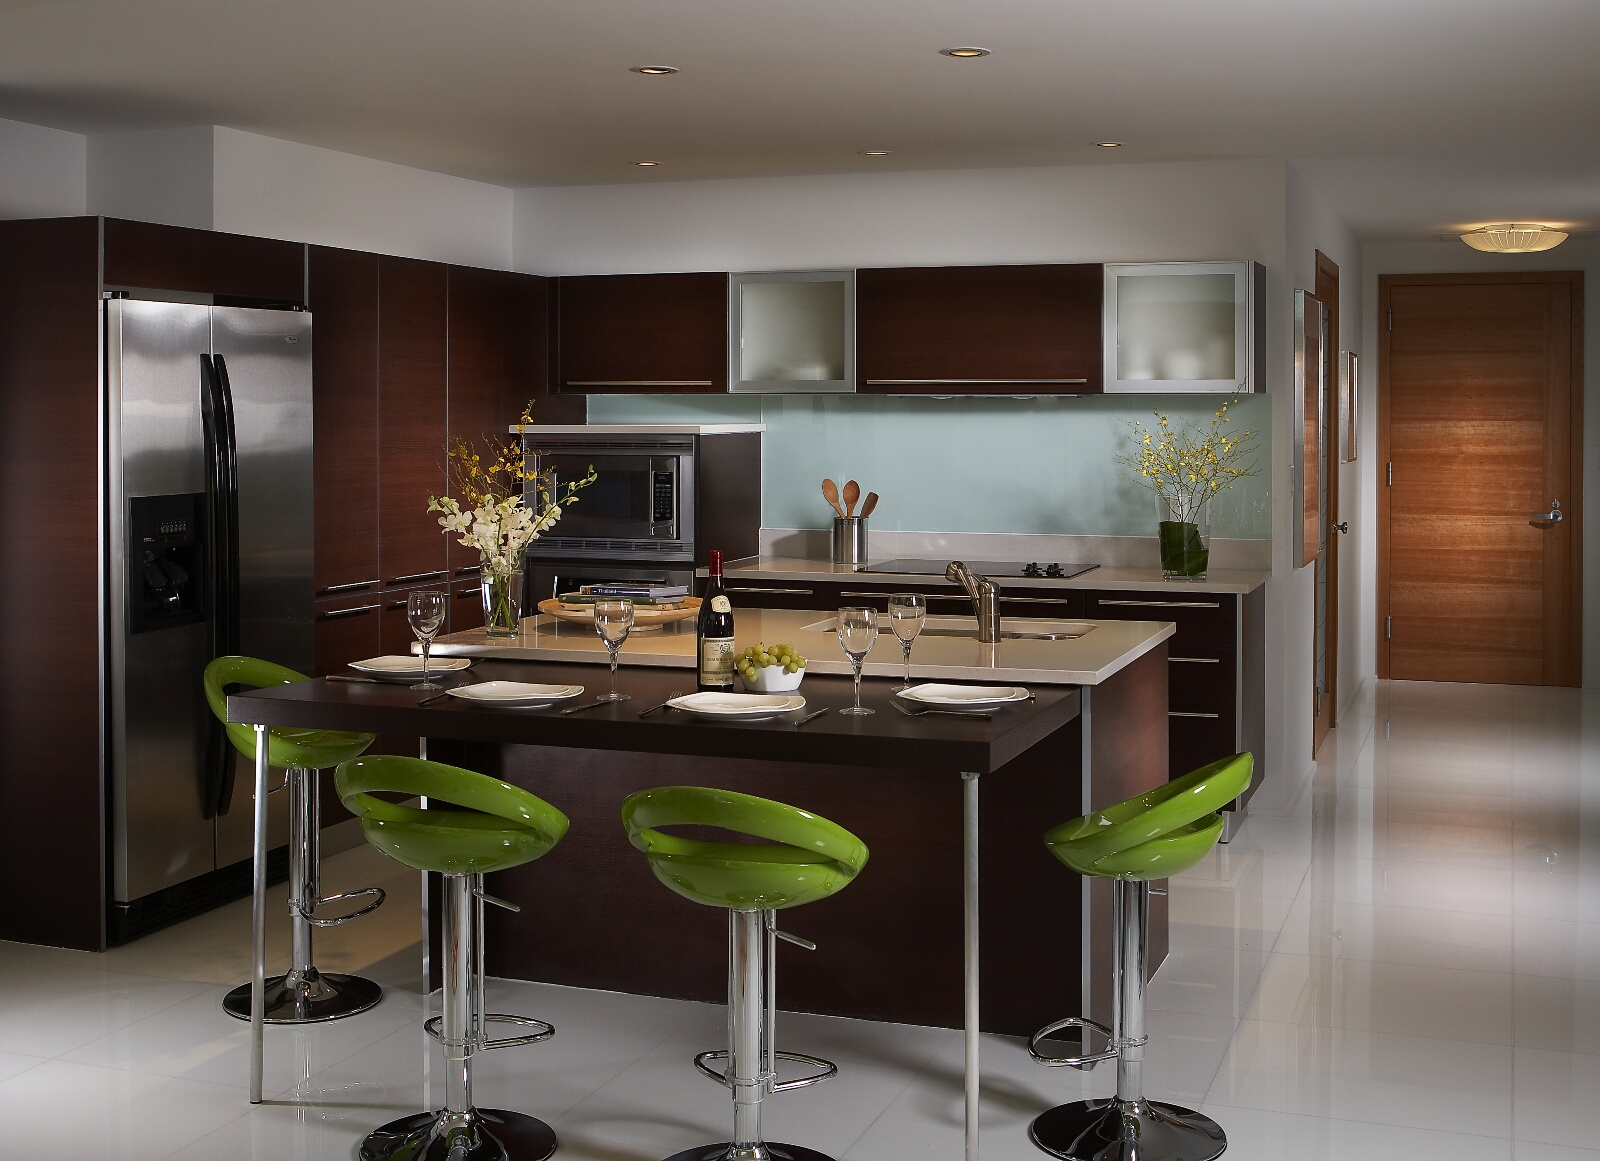 15 - Interior Designer Kitchens